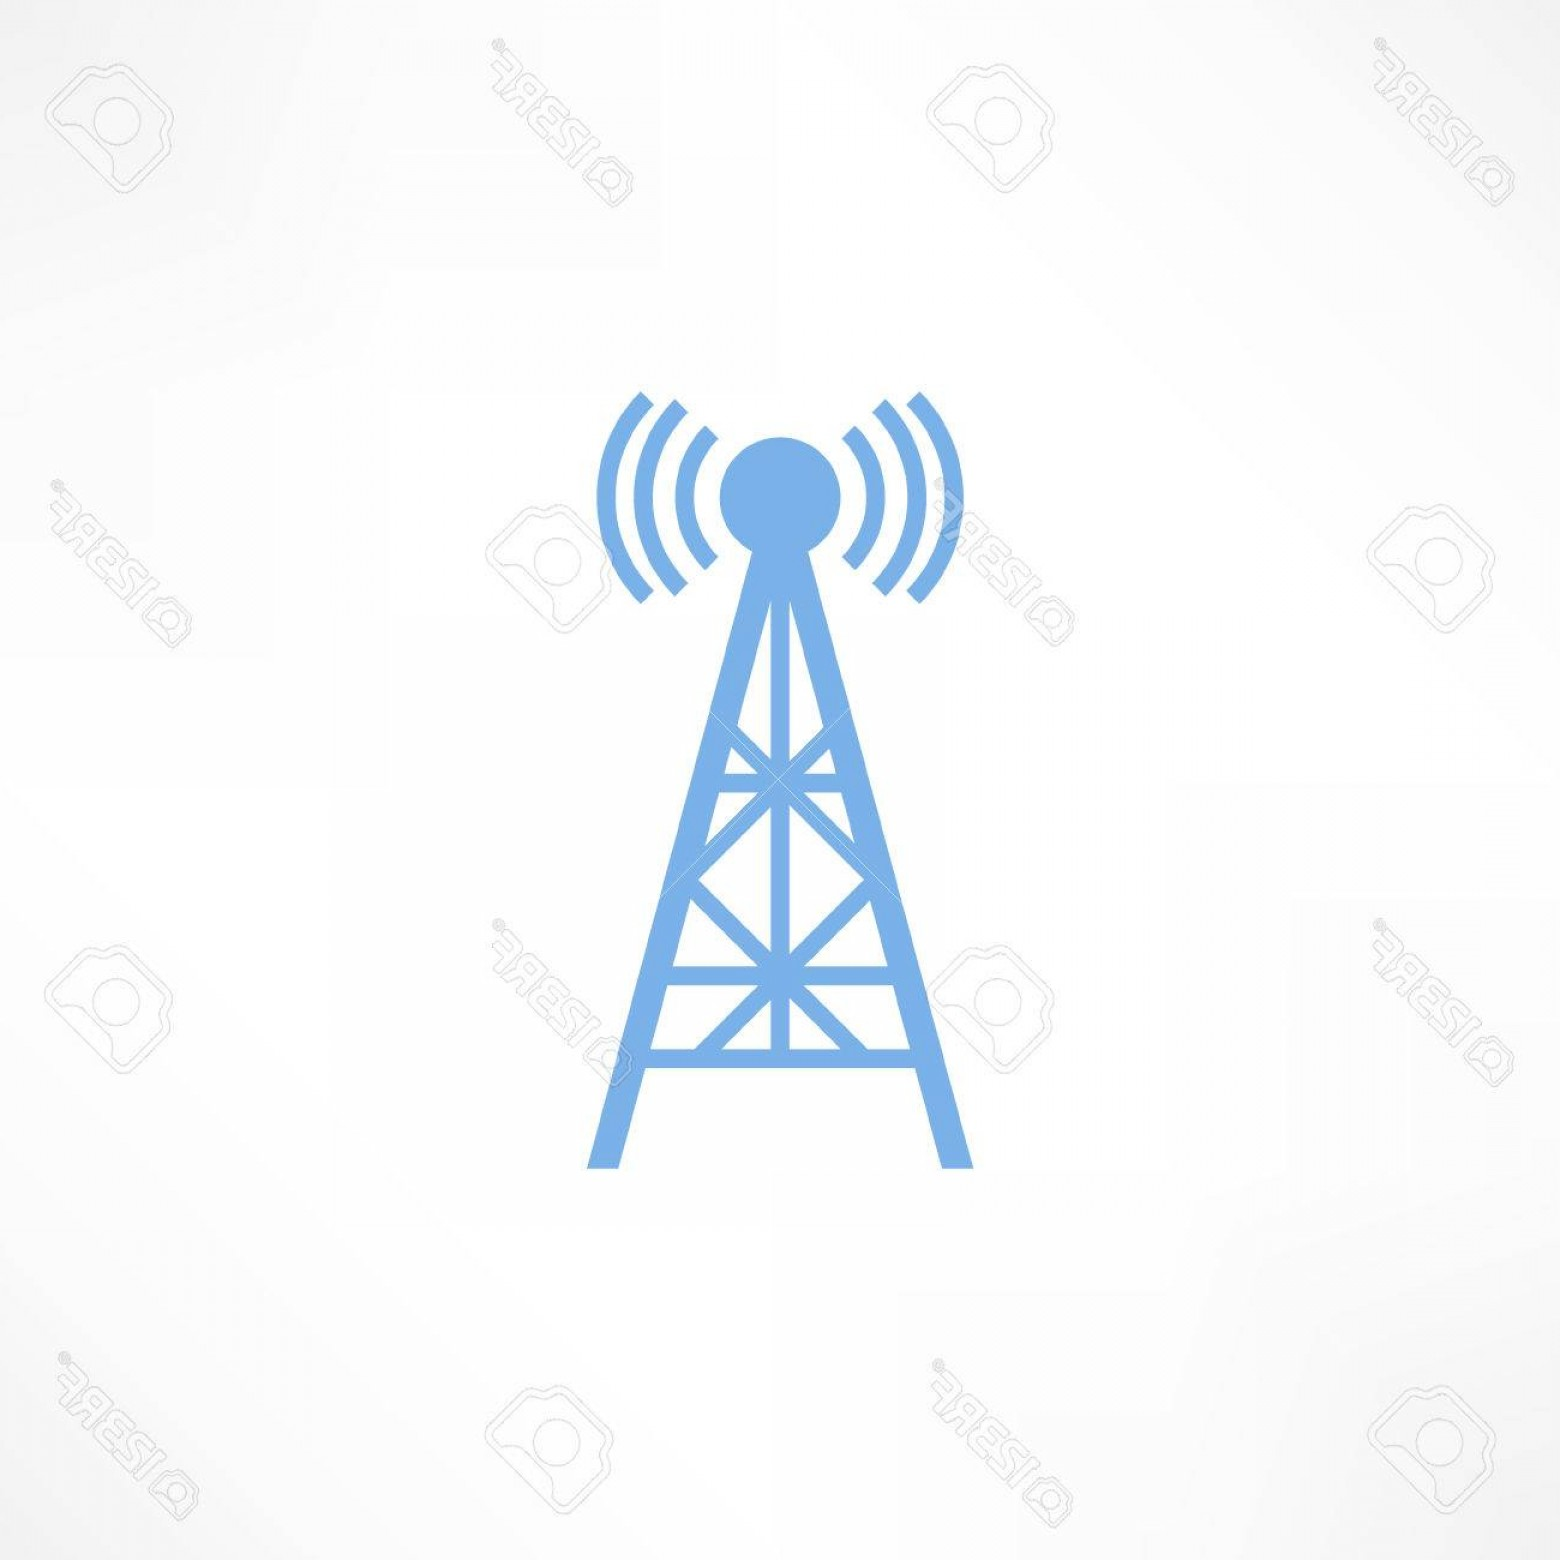 Vector Phone Tower: Photostock Vector Vector Illustration Radio Antenna Wireless Technology And Network Signal Radio Antenna Wave Tower Ra